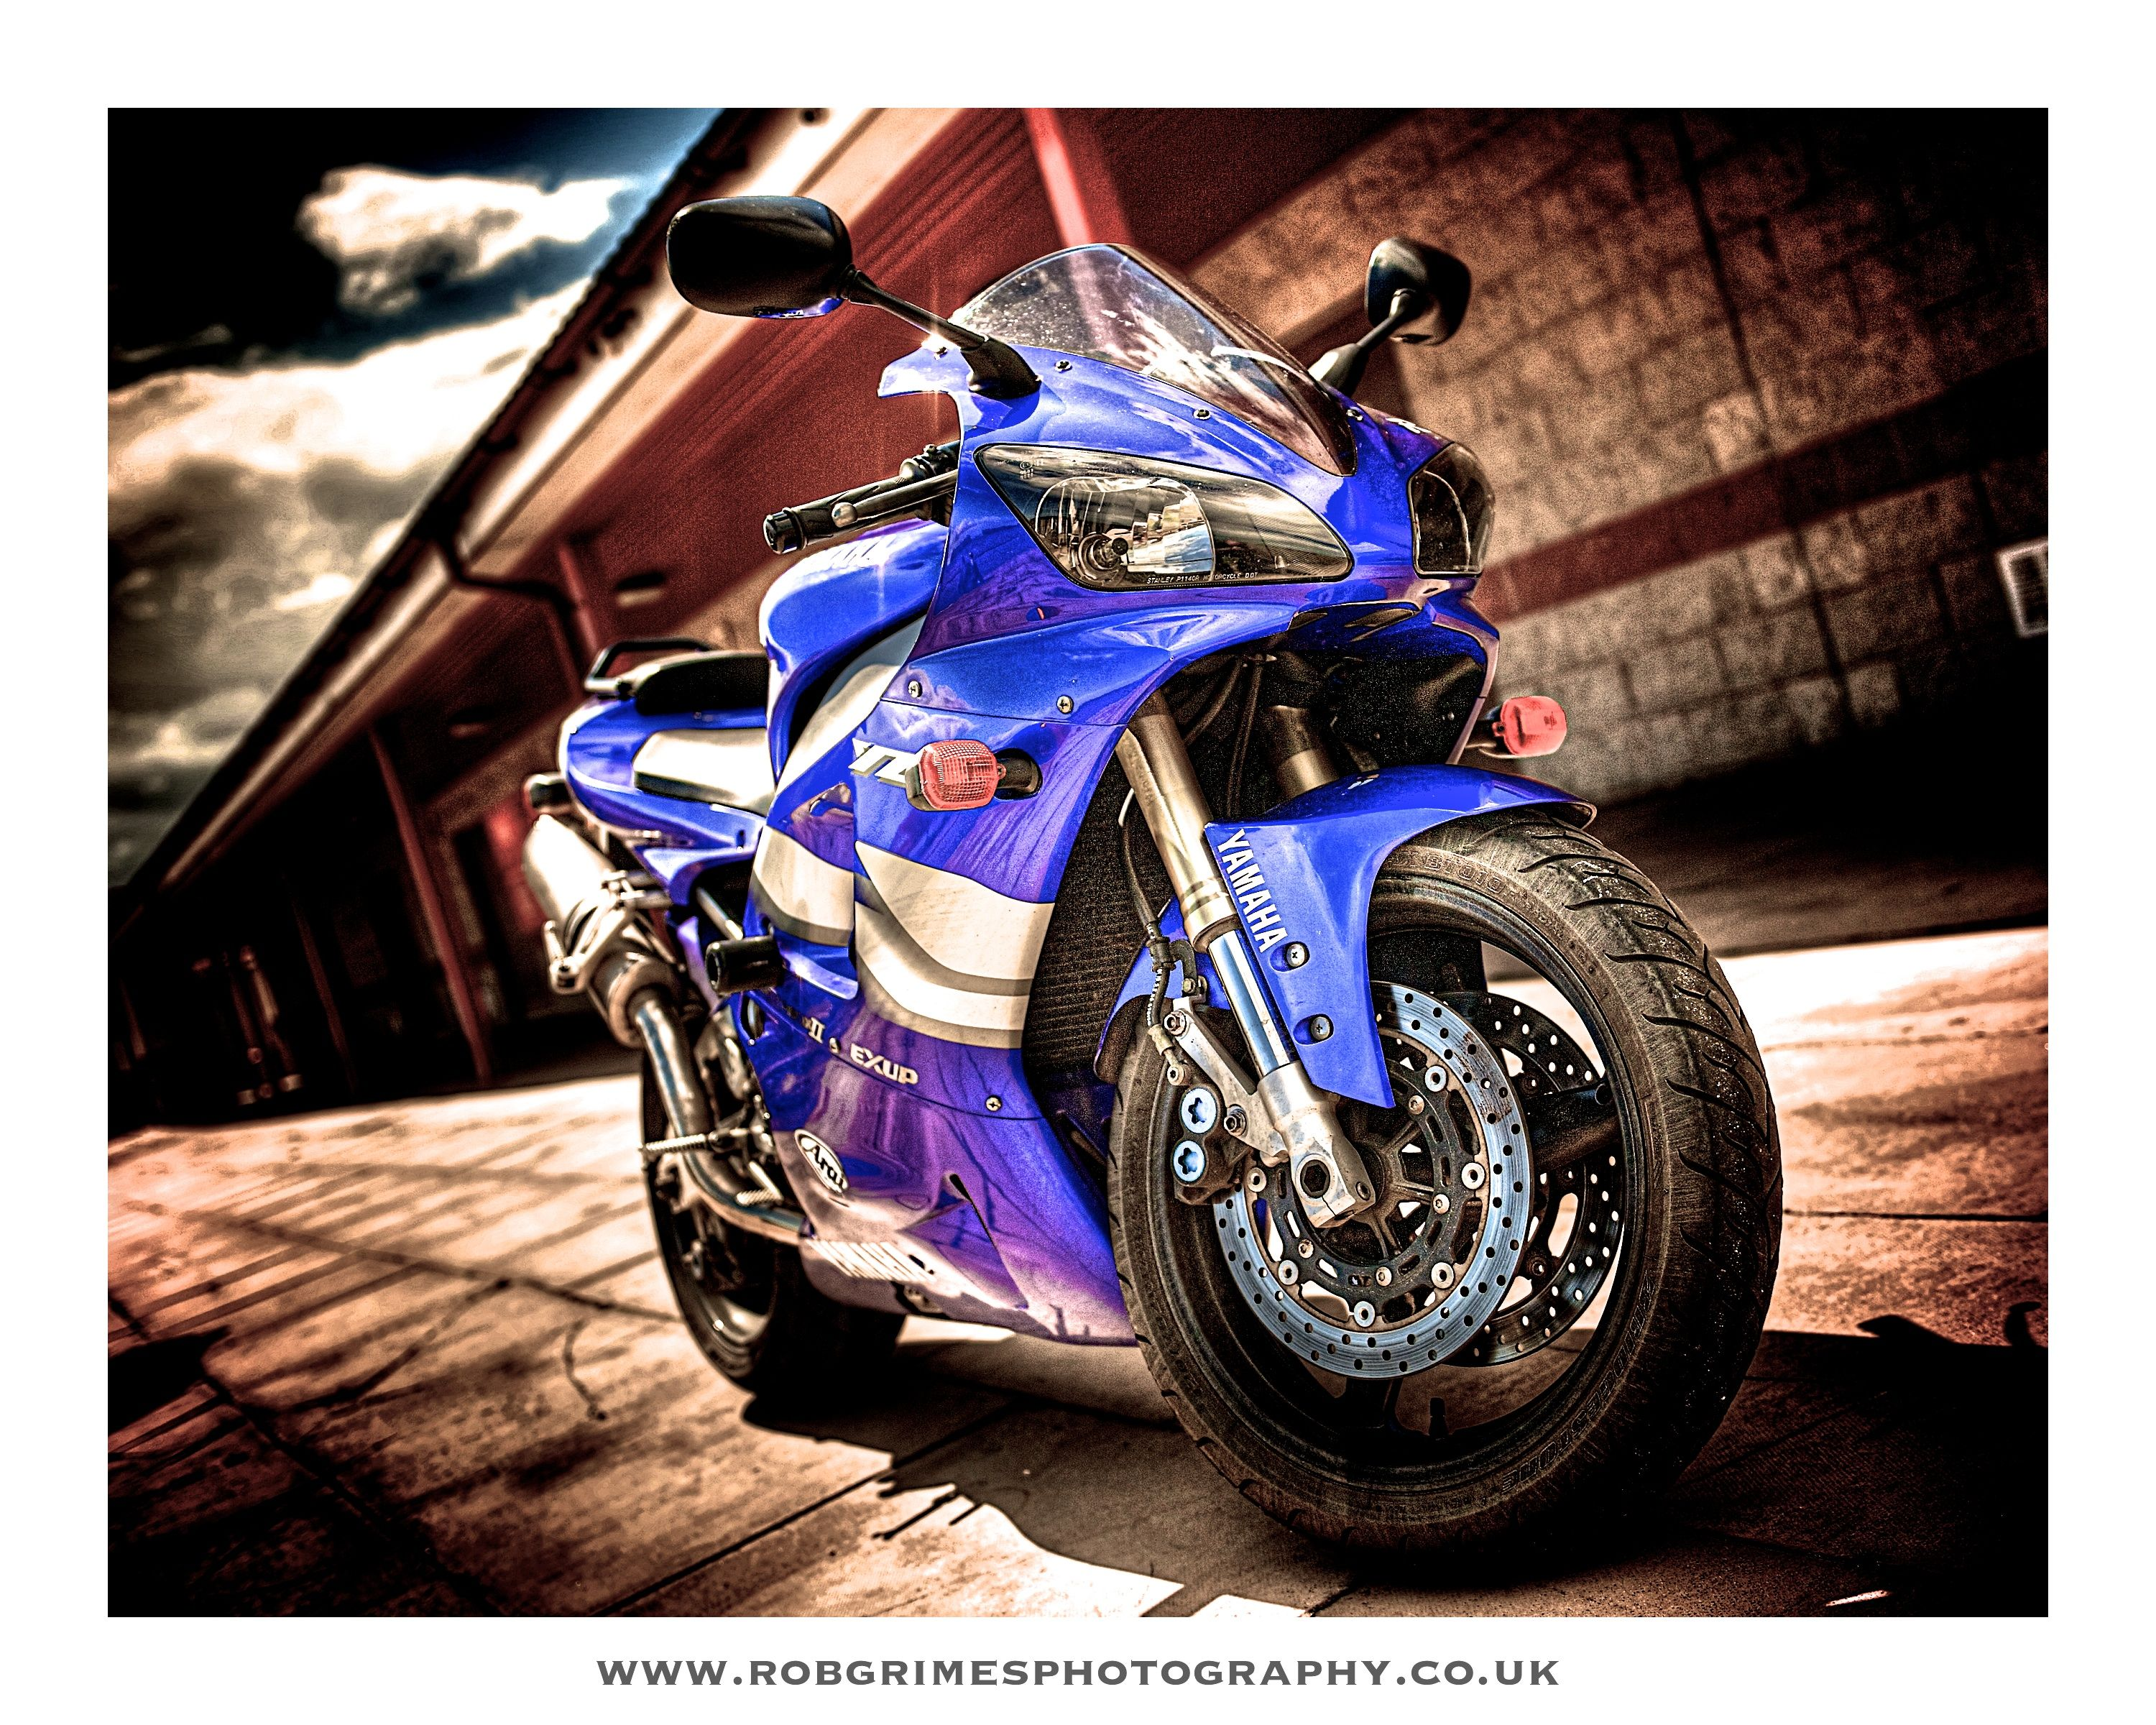 2012 yamaha yzf r6 reviews prices and specs review ebooks - Yamaha R1 2000 Model Fast